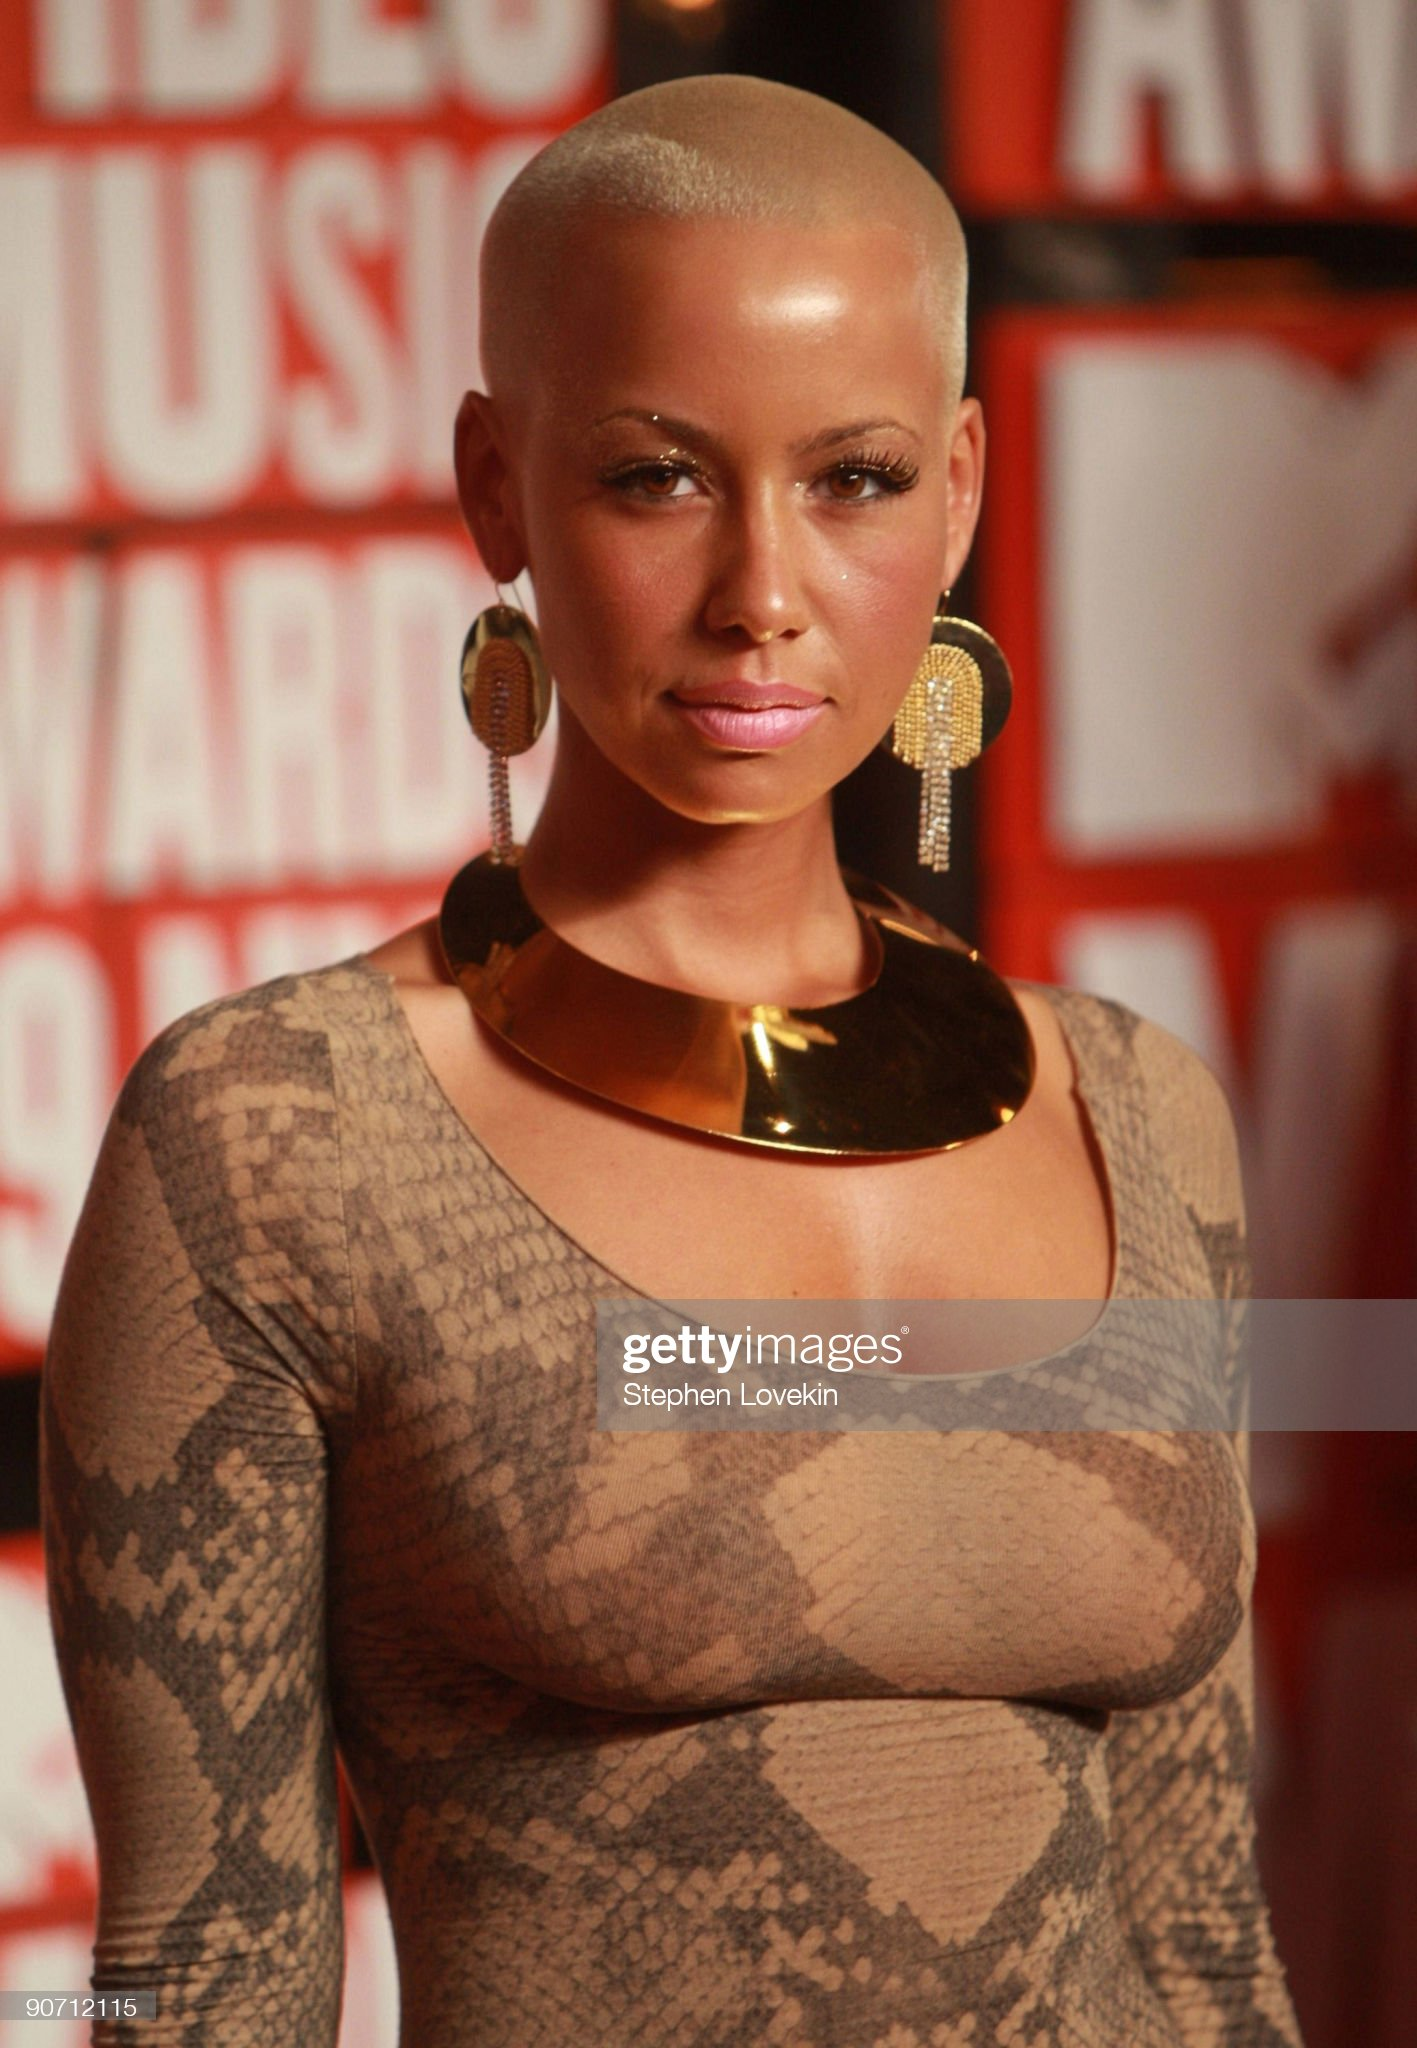 Short Hair Like Amber Rose Or Long Hair Like Angela Rye Which Hairstyle Did You Like More Sports Hip Hop Piff The Coli